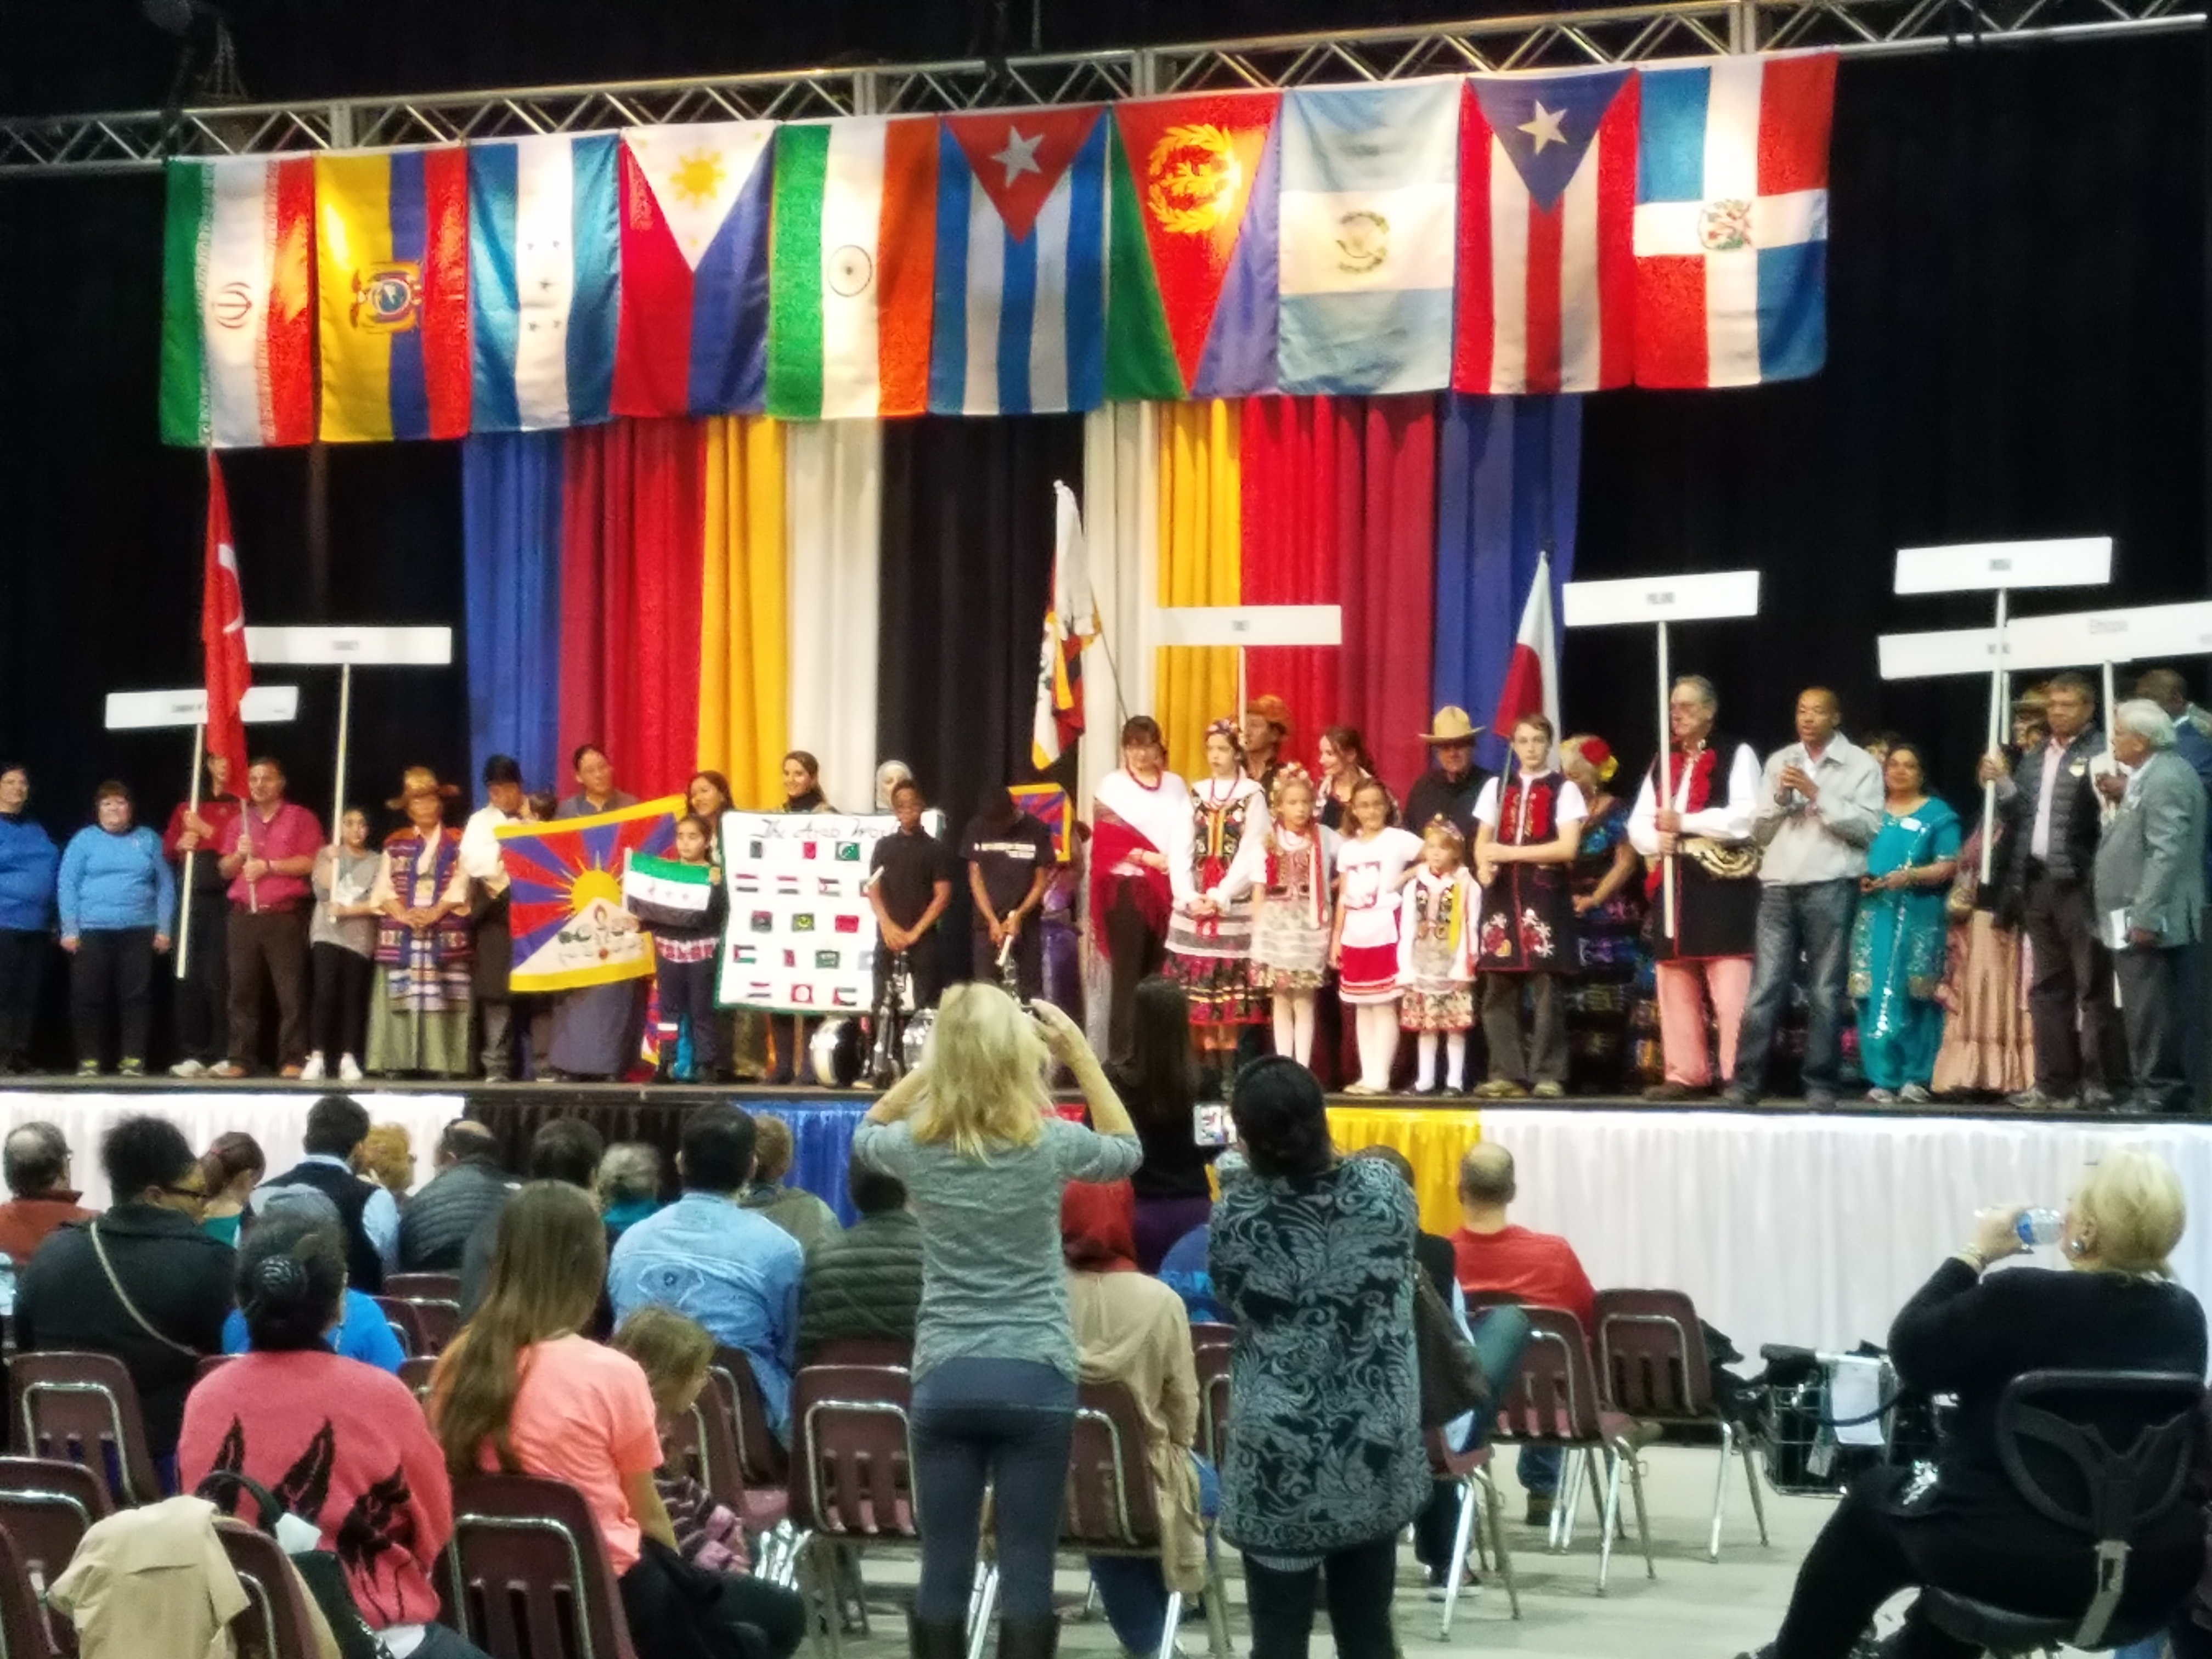 Noble Academy Columbus CYSP team went to Columbus International Festival